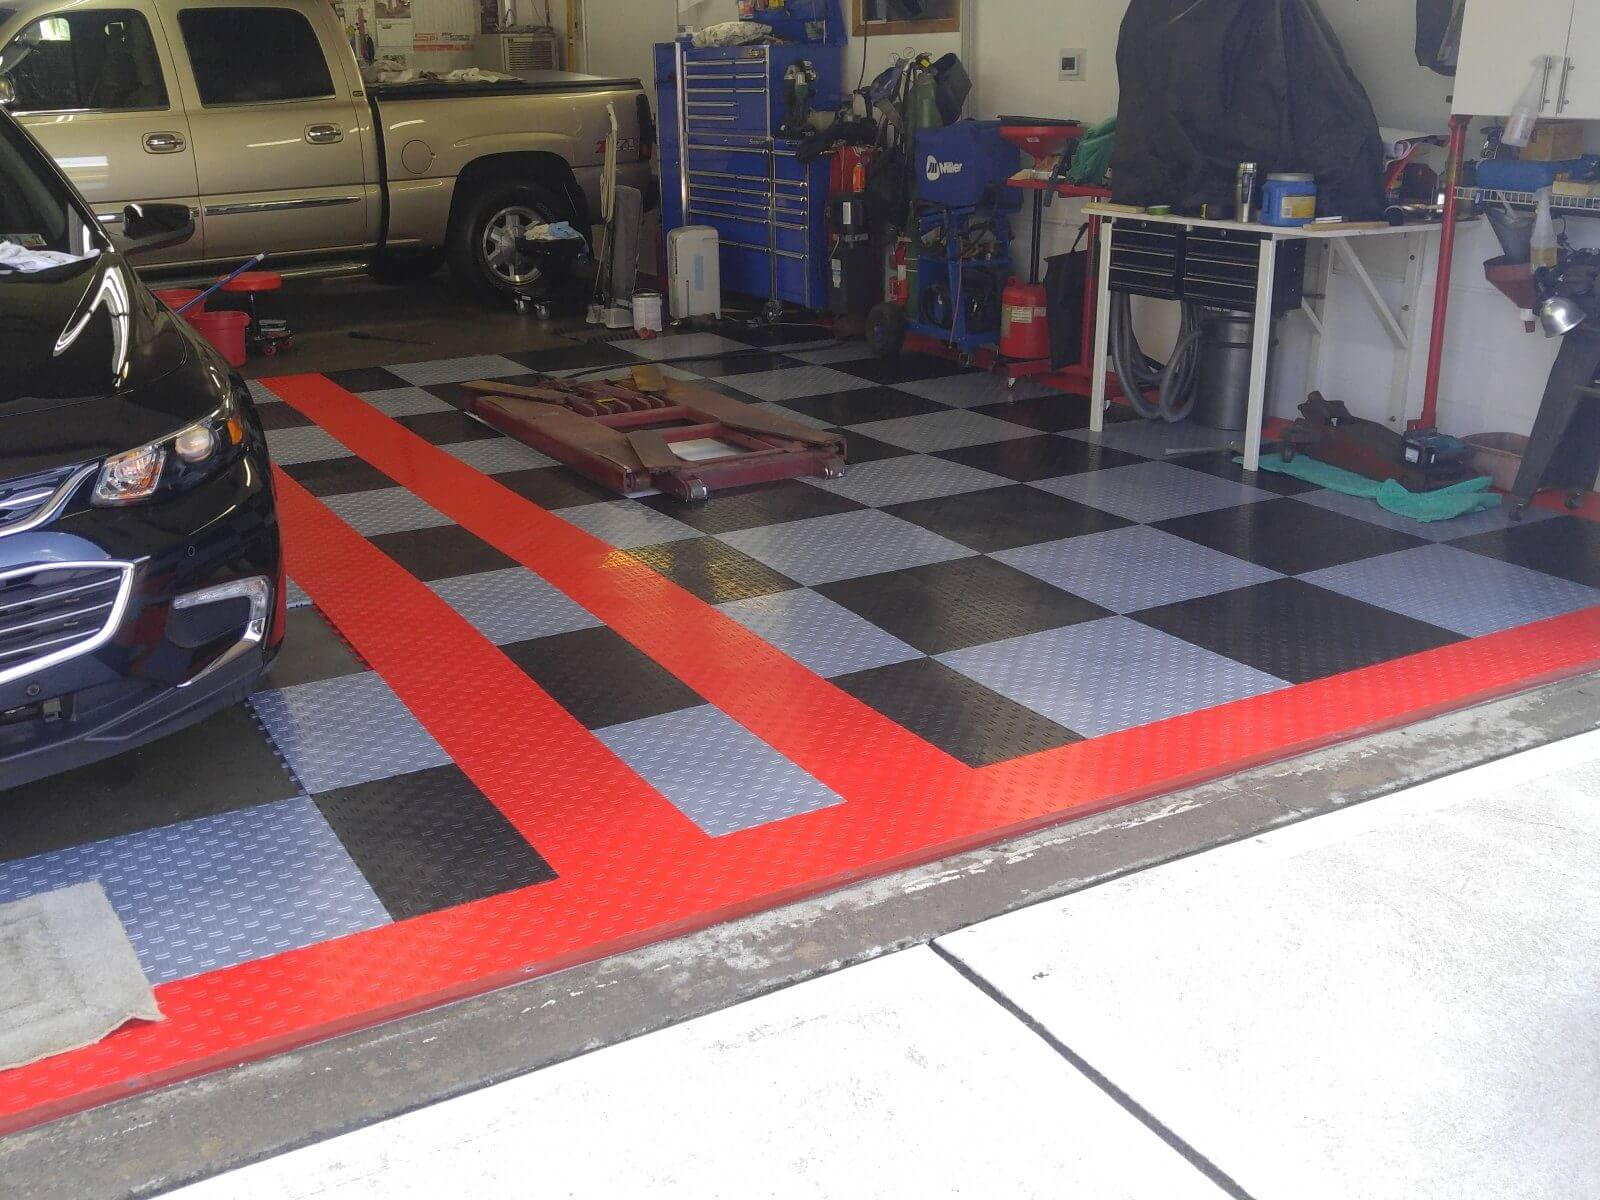 garage design embrace garage floor tiles why truelock hd why truelock hd garage floor tiles garage floor tiles randy z s black and silver with dailygadgetfo Gallery